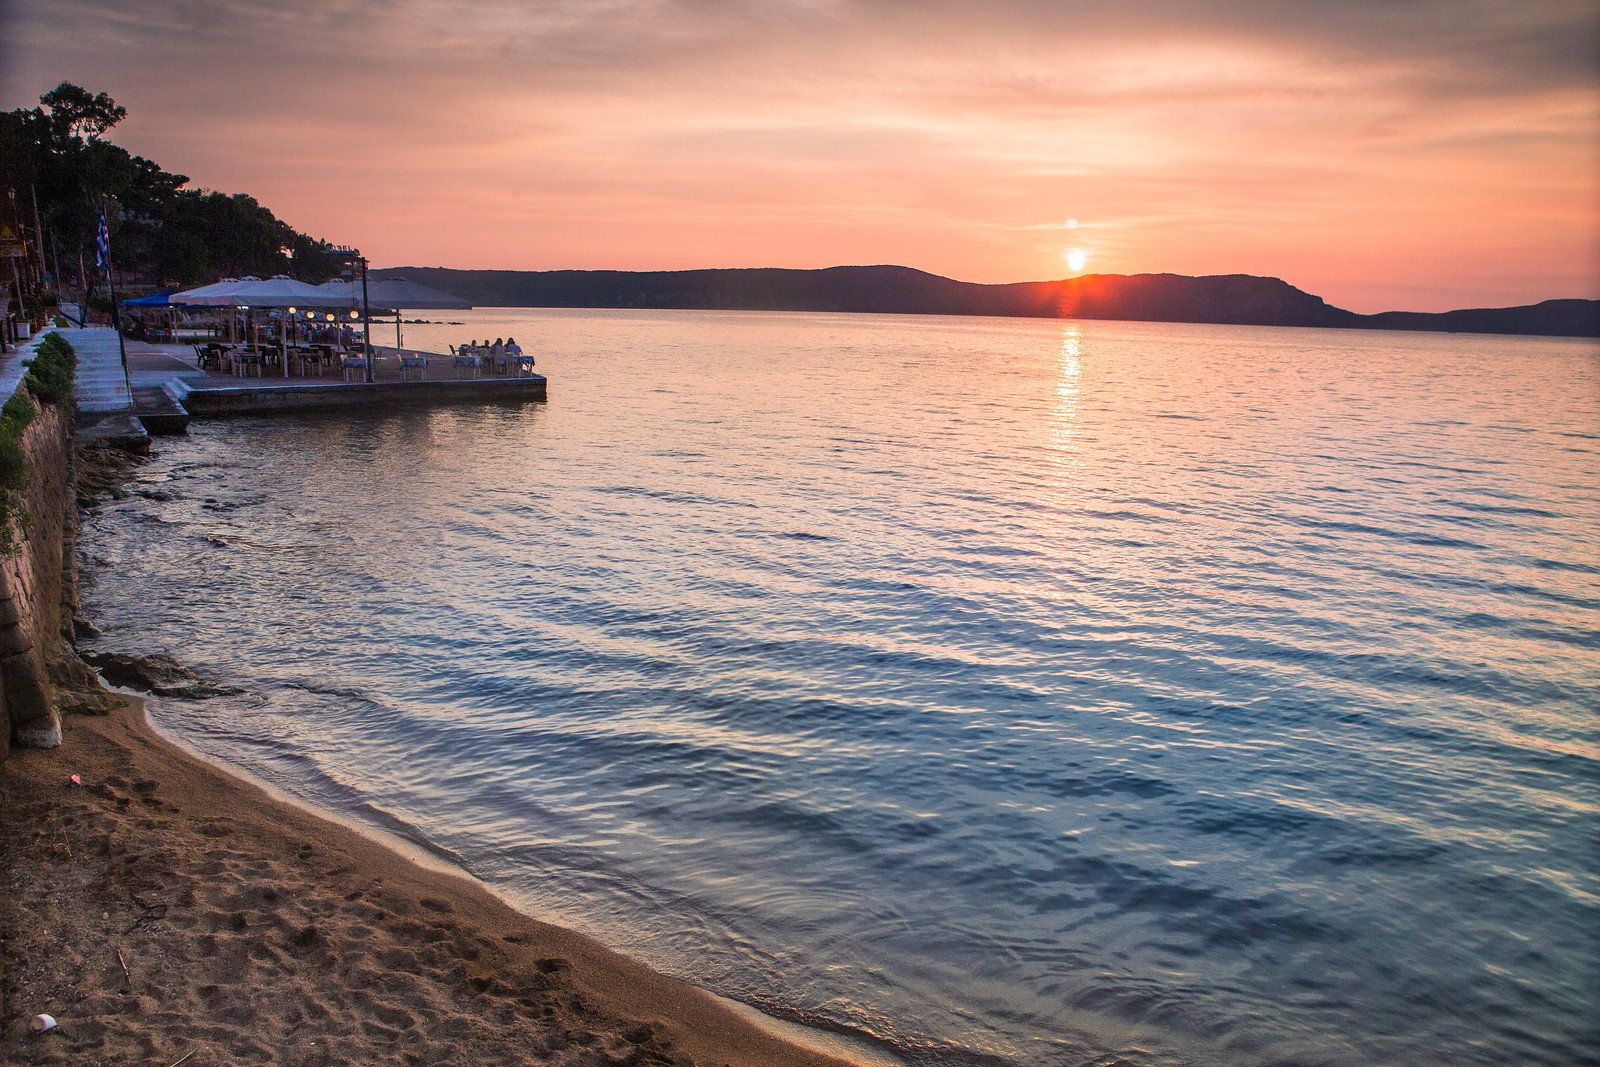 A beachside restaurant at sunset in Pylos, Greece